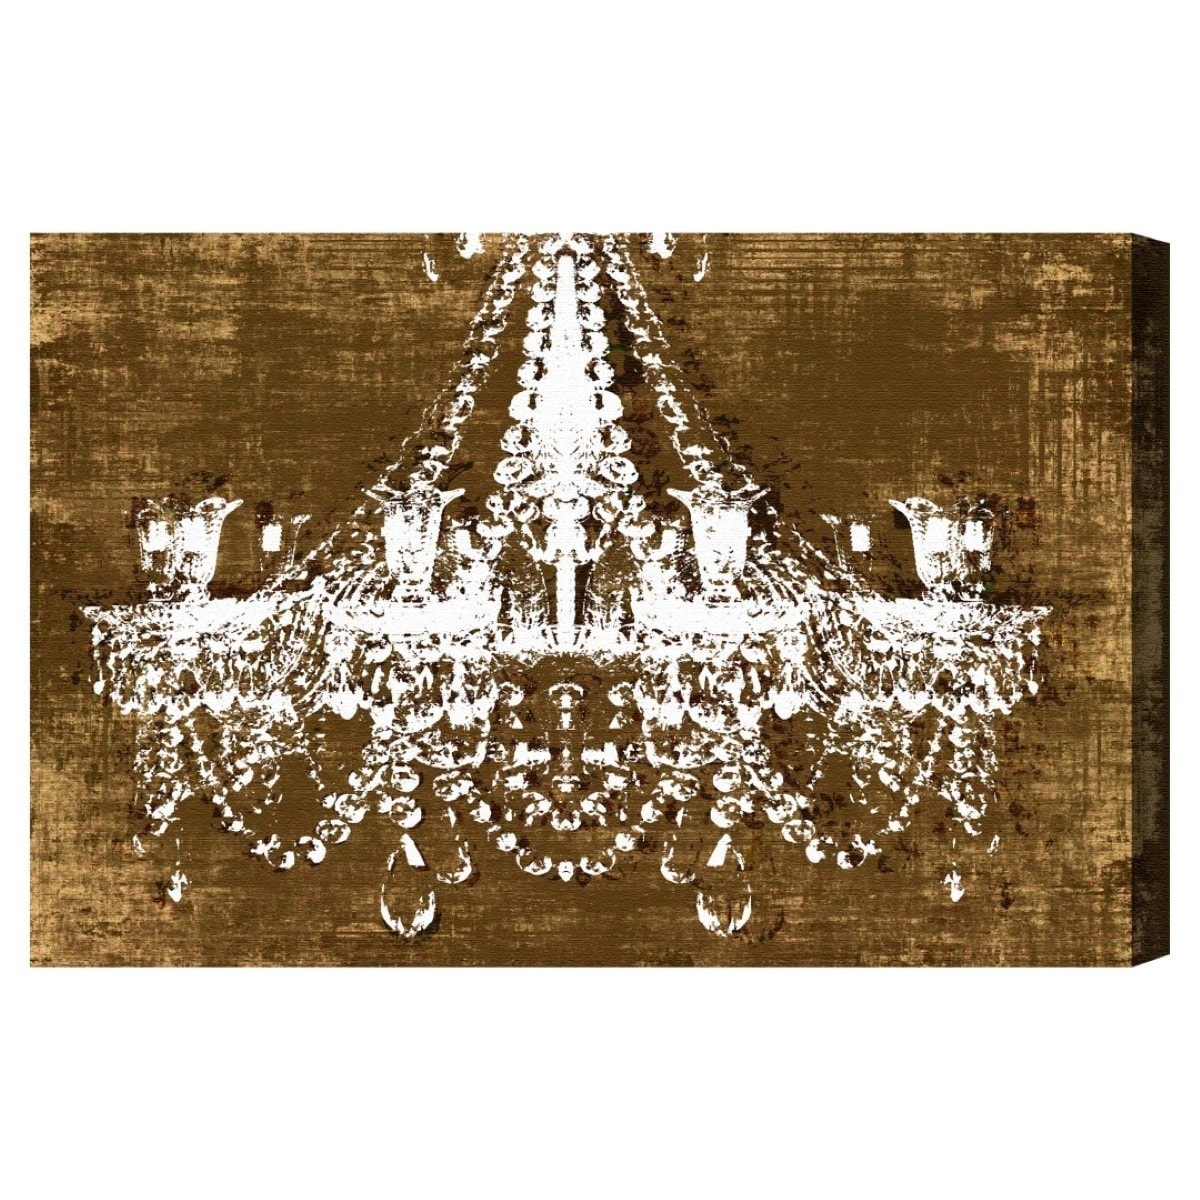 furniture pin graphic to choose decor online com all art great deals entrance with chandelier canvas night best home selection outdoors the dramatic store for on oliver wayfair products gal shop from